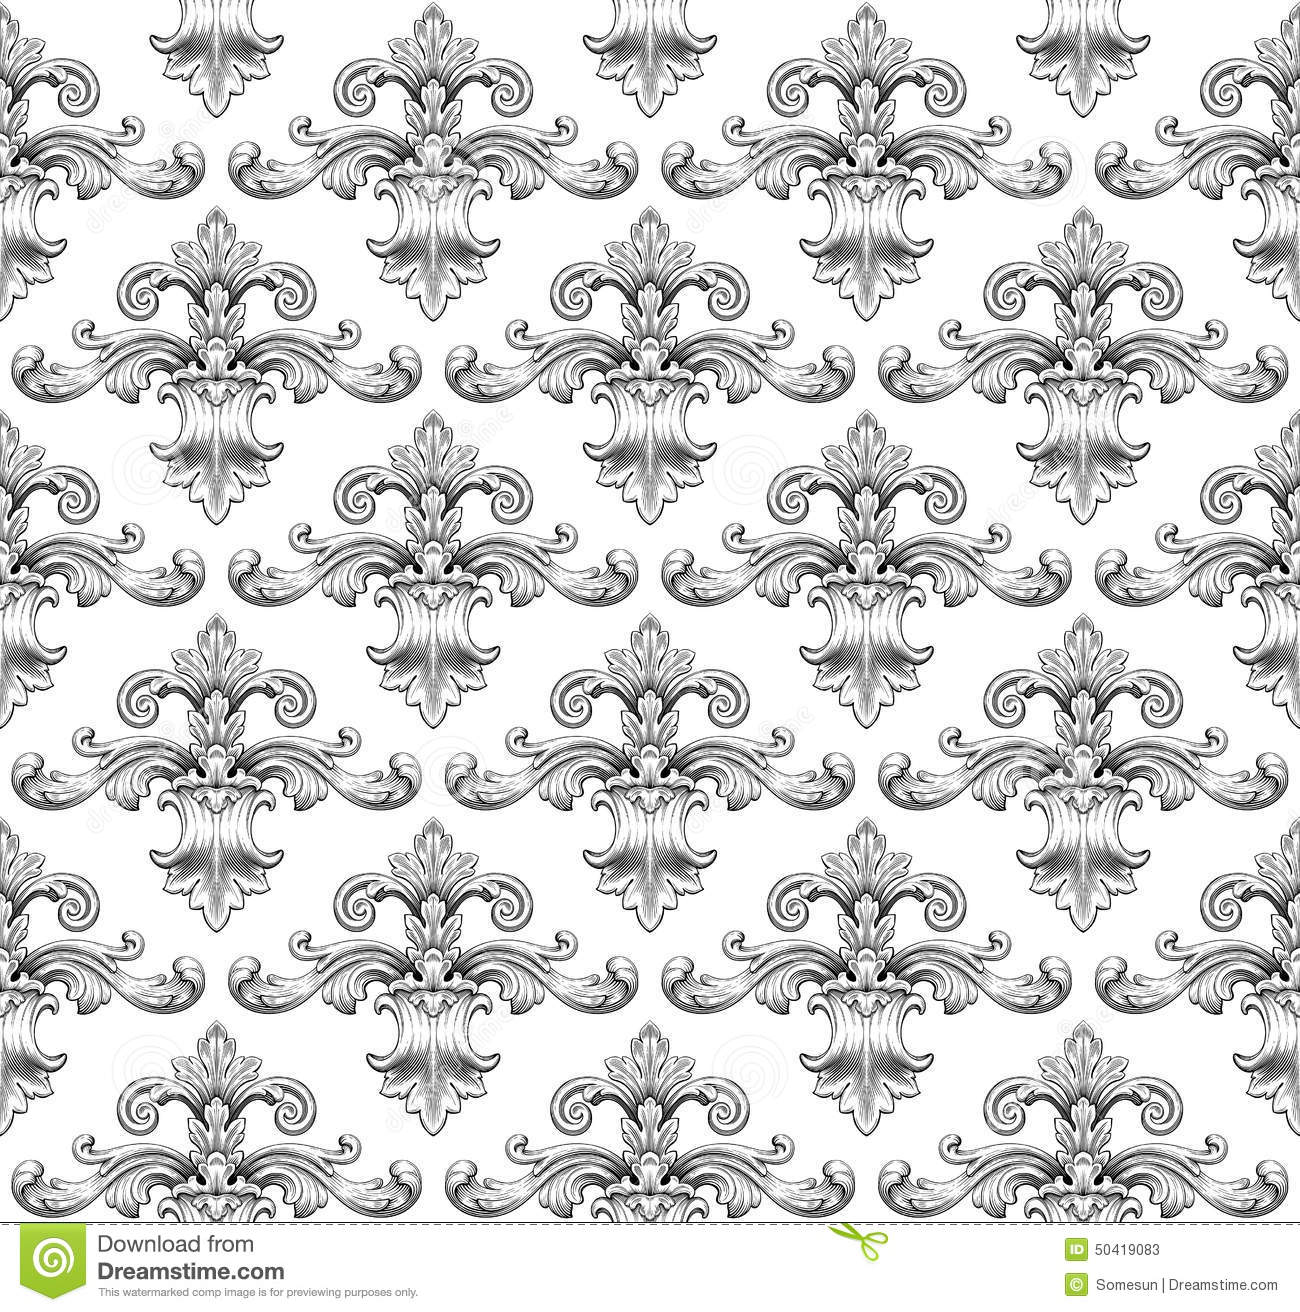 leaf scroll wallpaper vintage patterns - photo #28